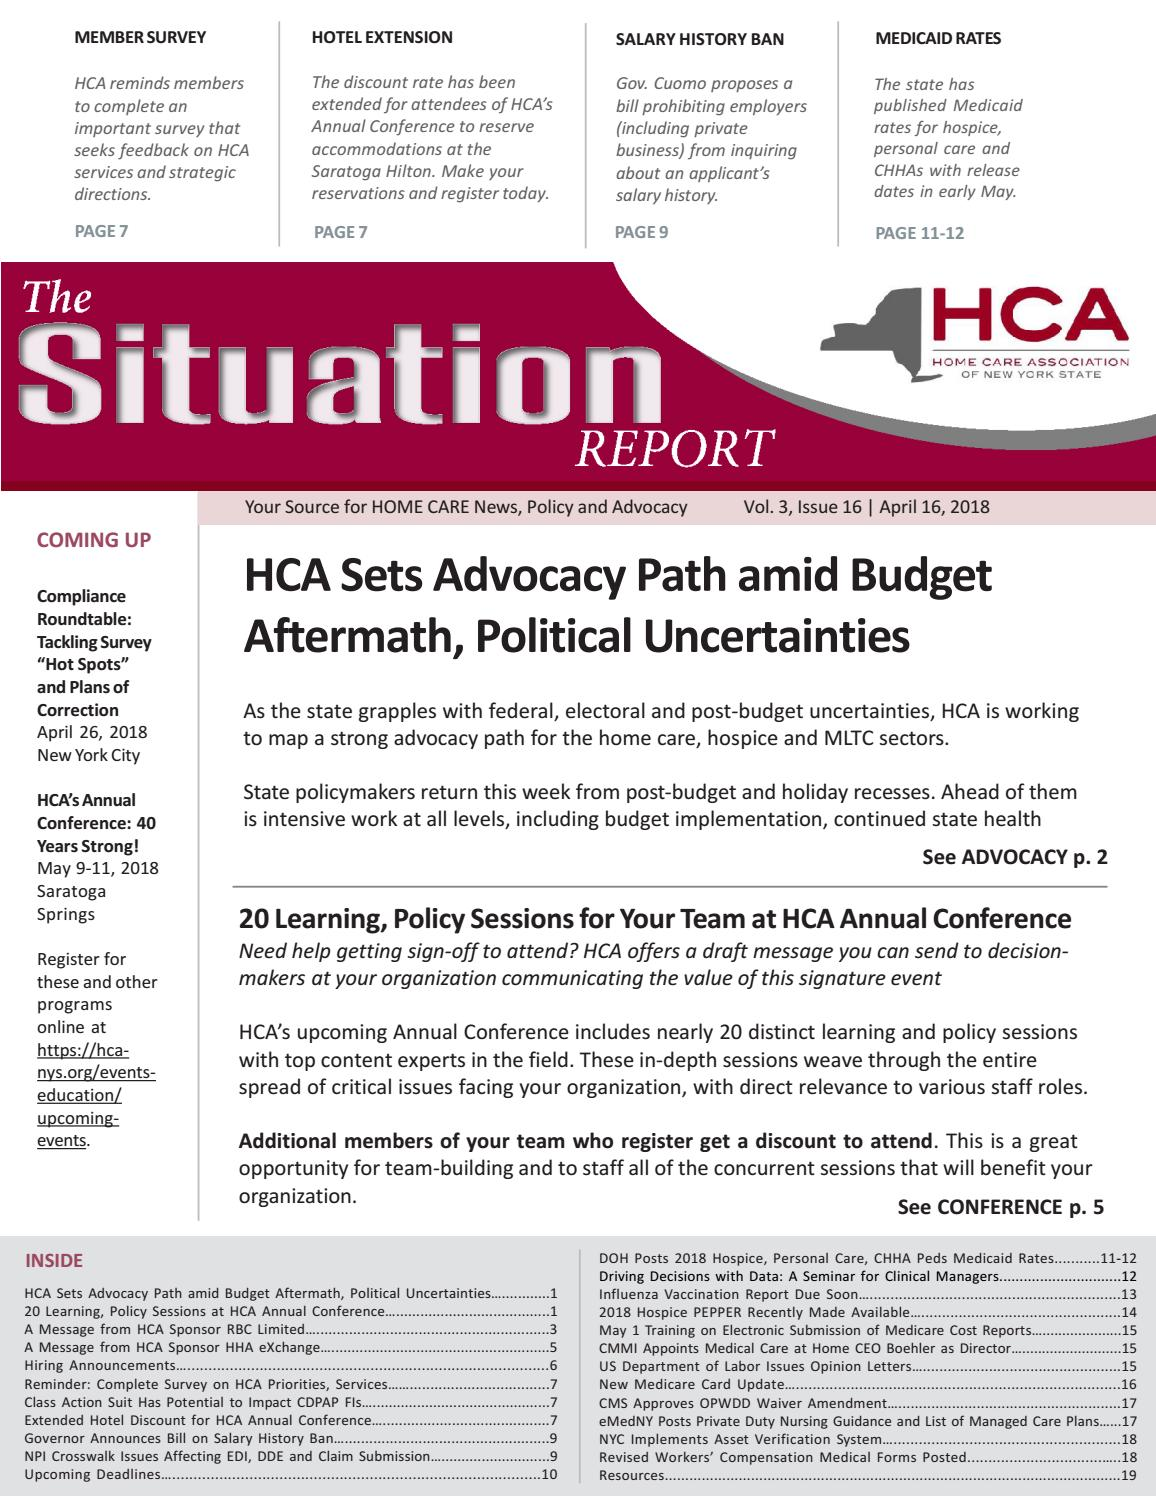 April 16, 2018 Edition of The Situation Report by Home Care